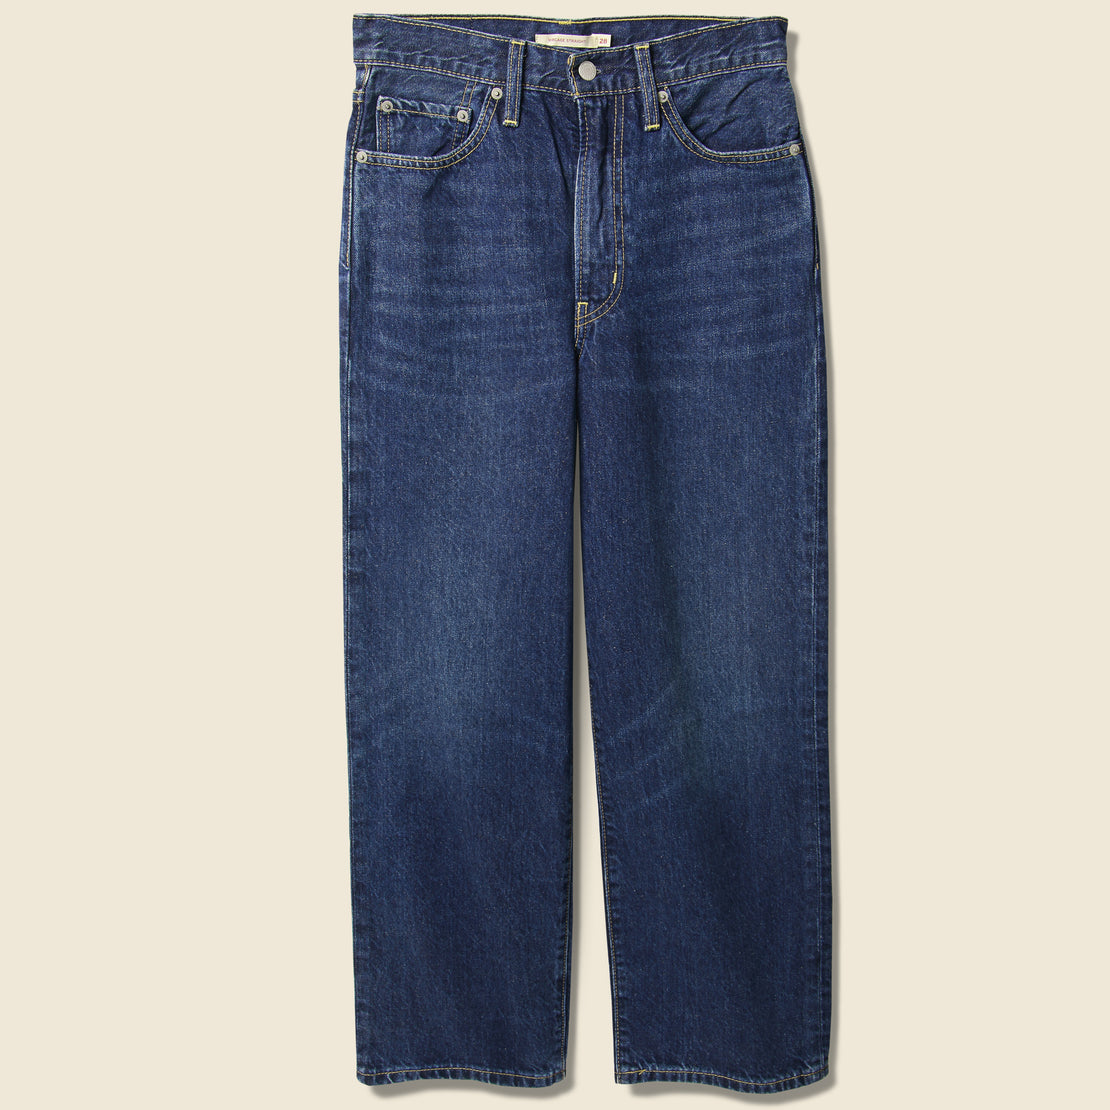 Levis Premium Ribcage Straight Ankle Jean - Ground Swell